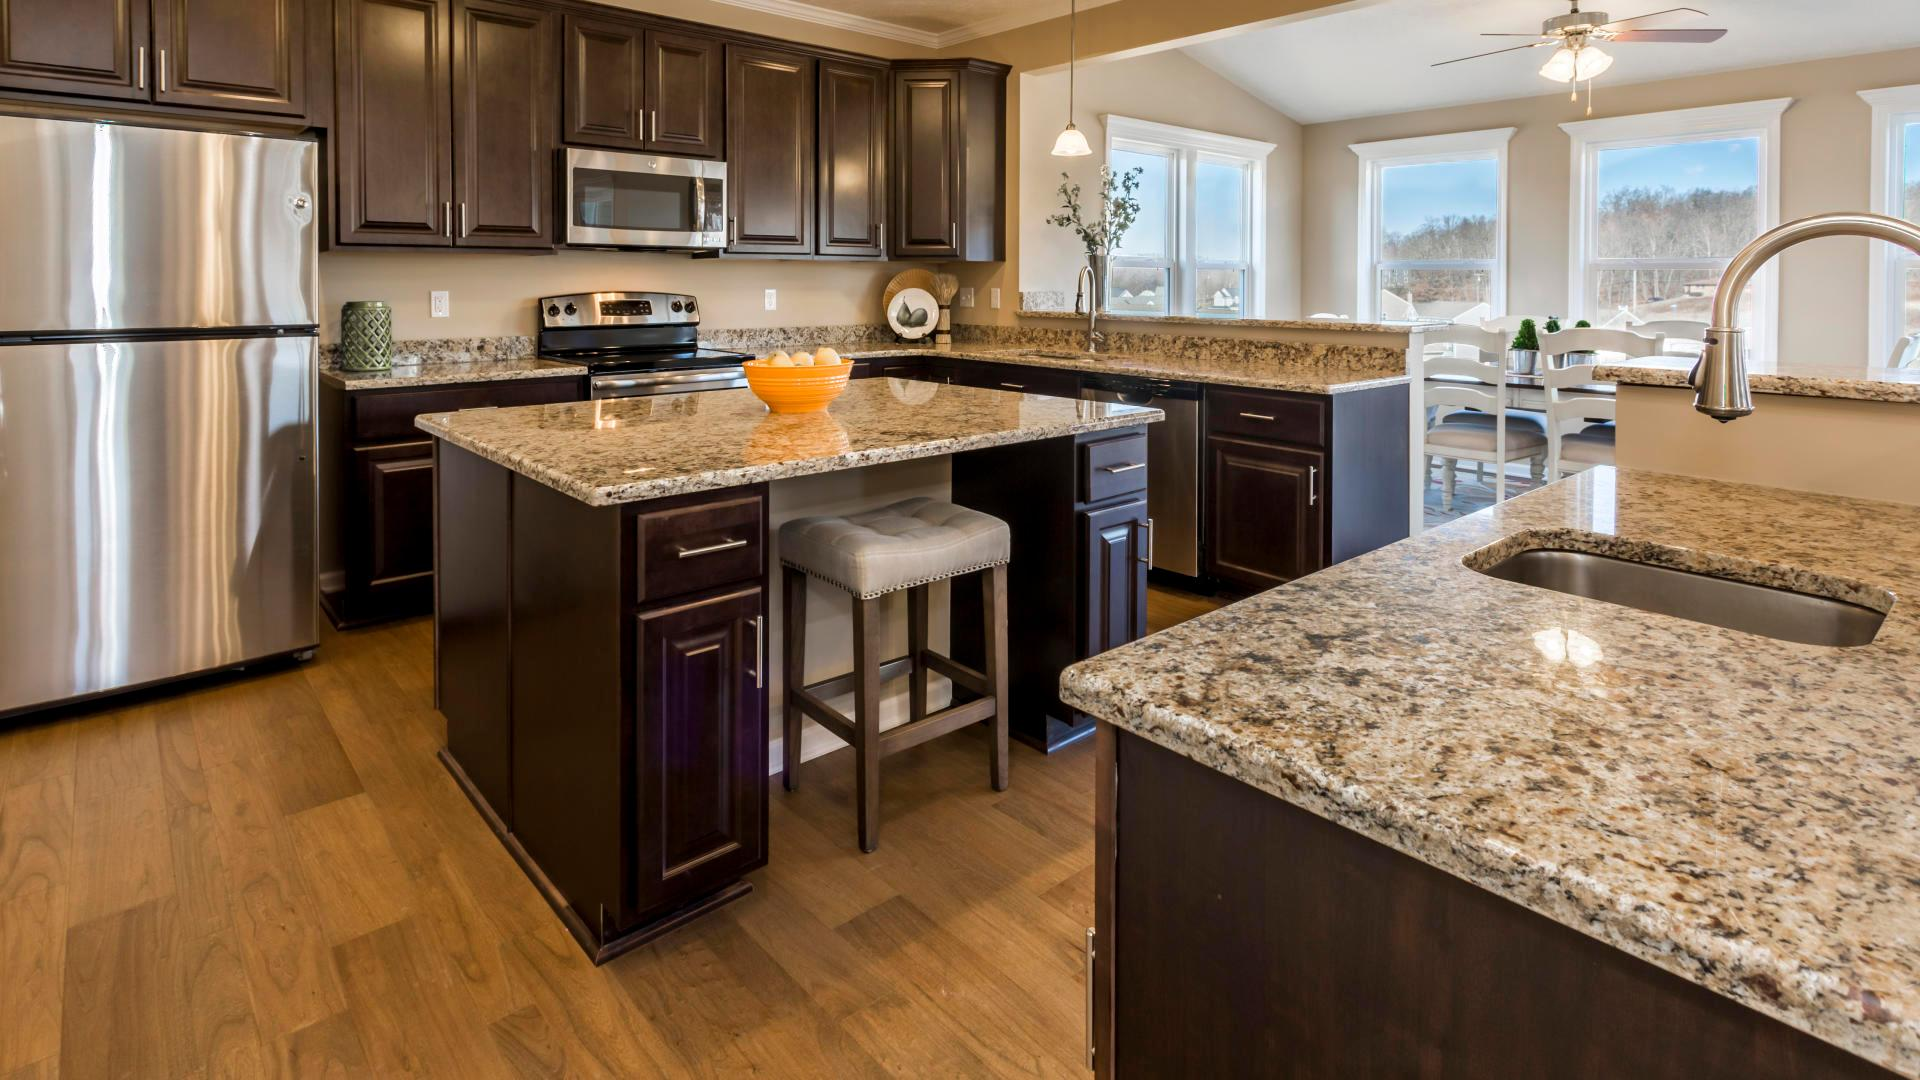 Kitchen featured in the Somerset By Maronda Homes in Pittsburgh, PA